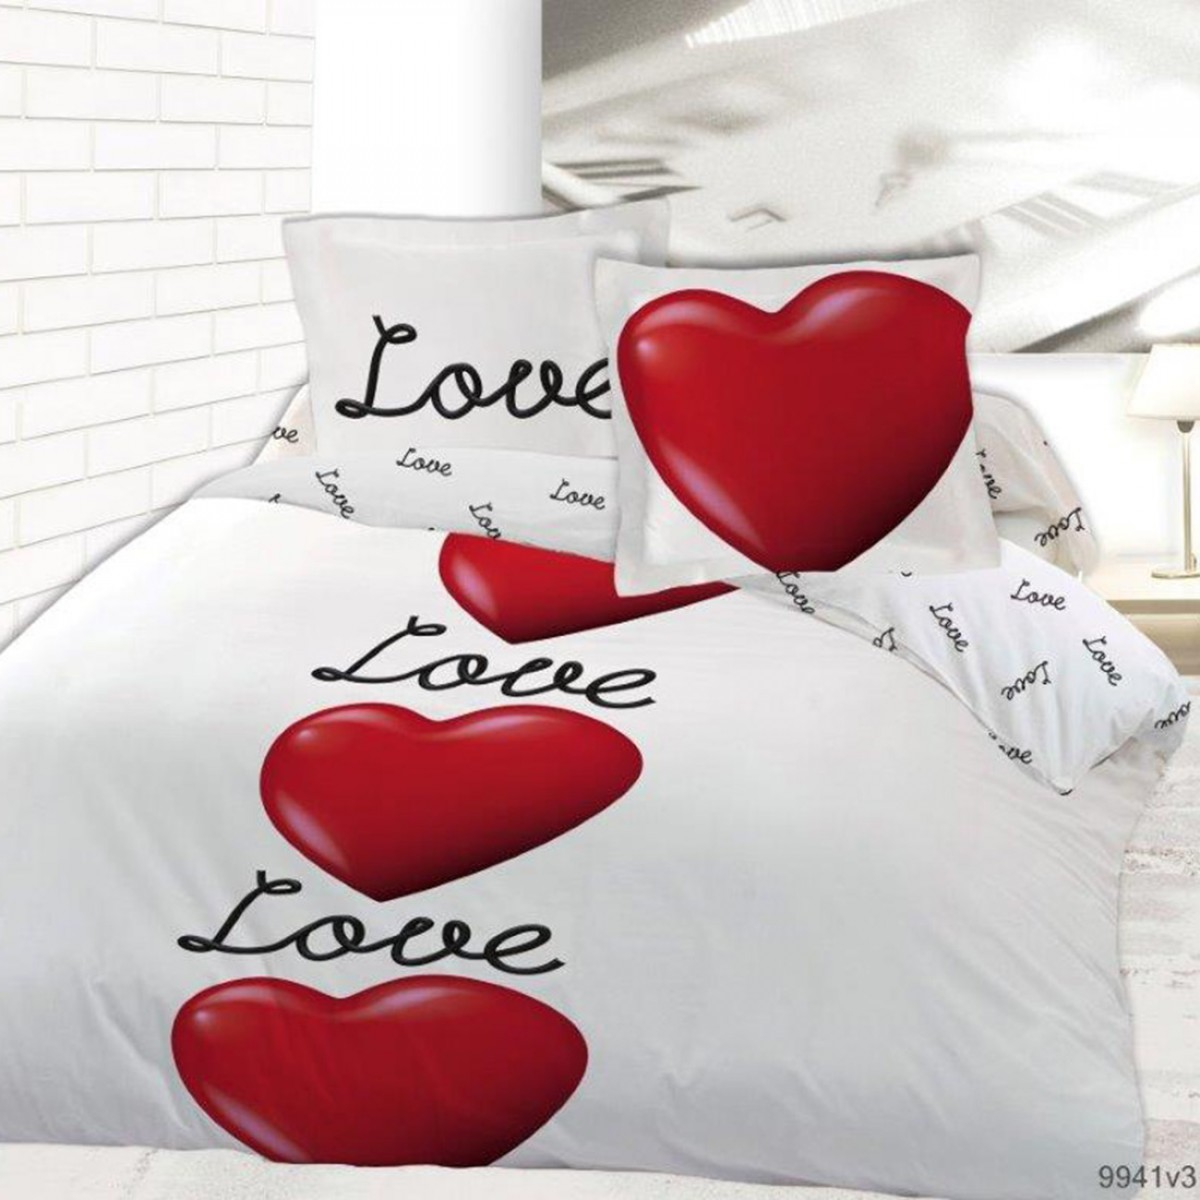 Housse de couette love is in the air 200x200 les douces for Housse de couette 200x200 blanche